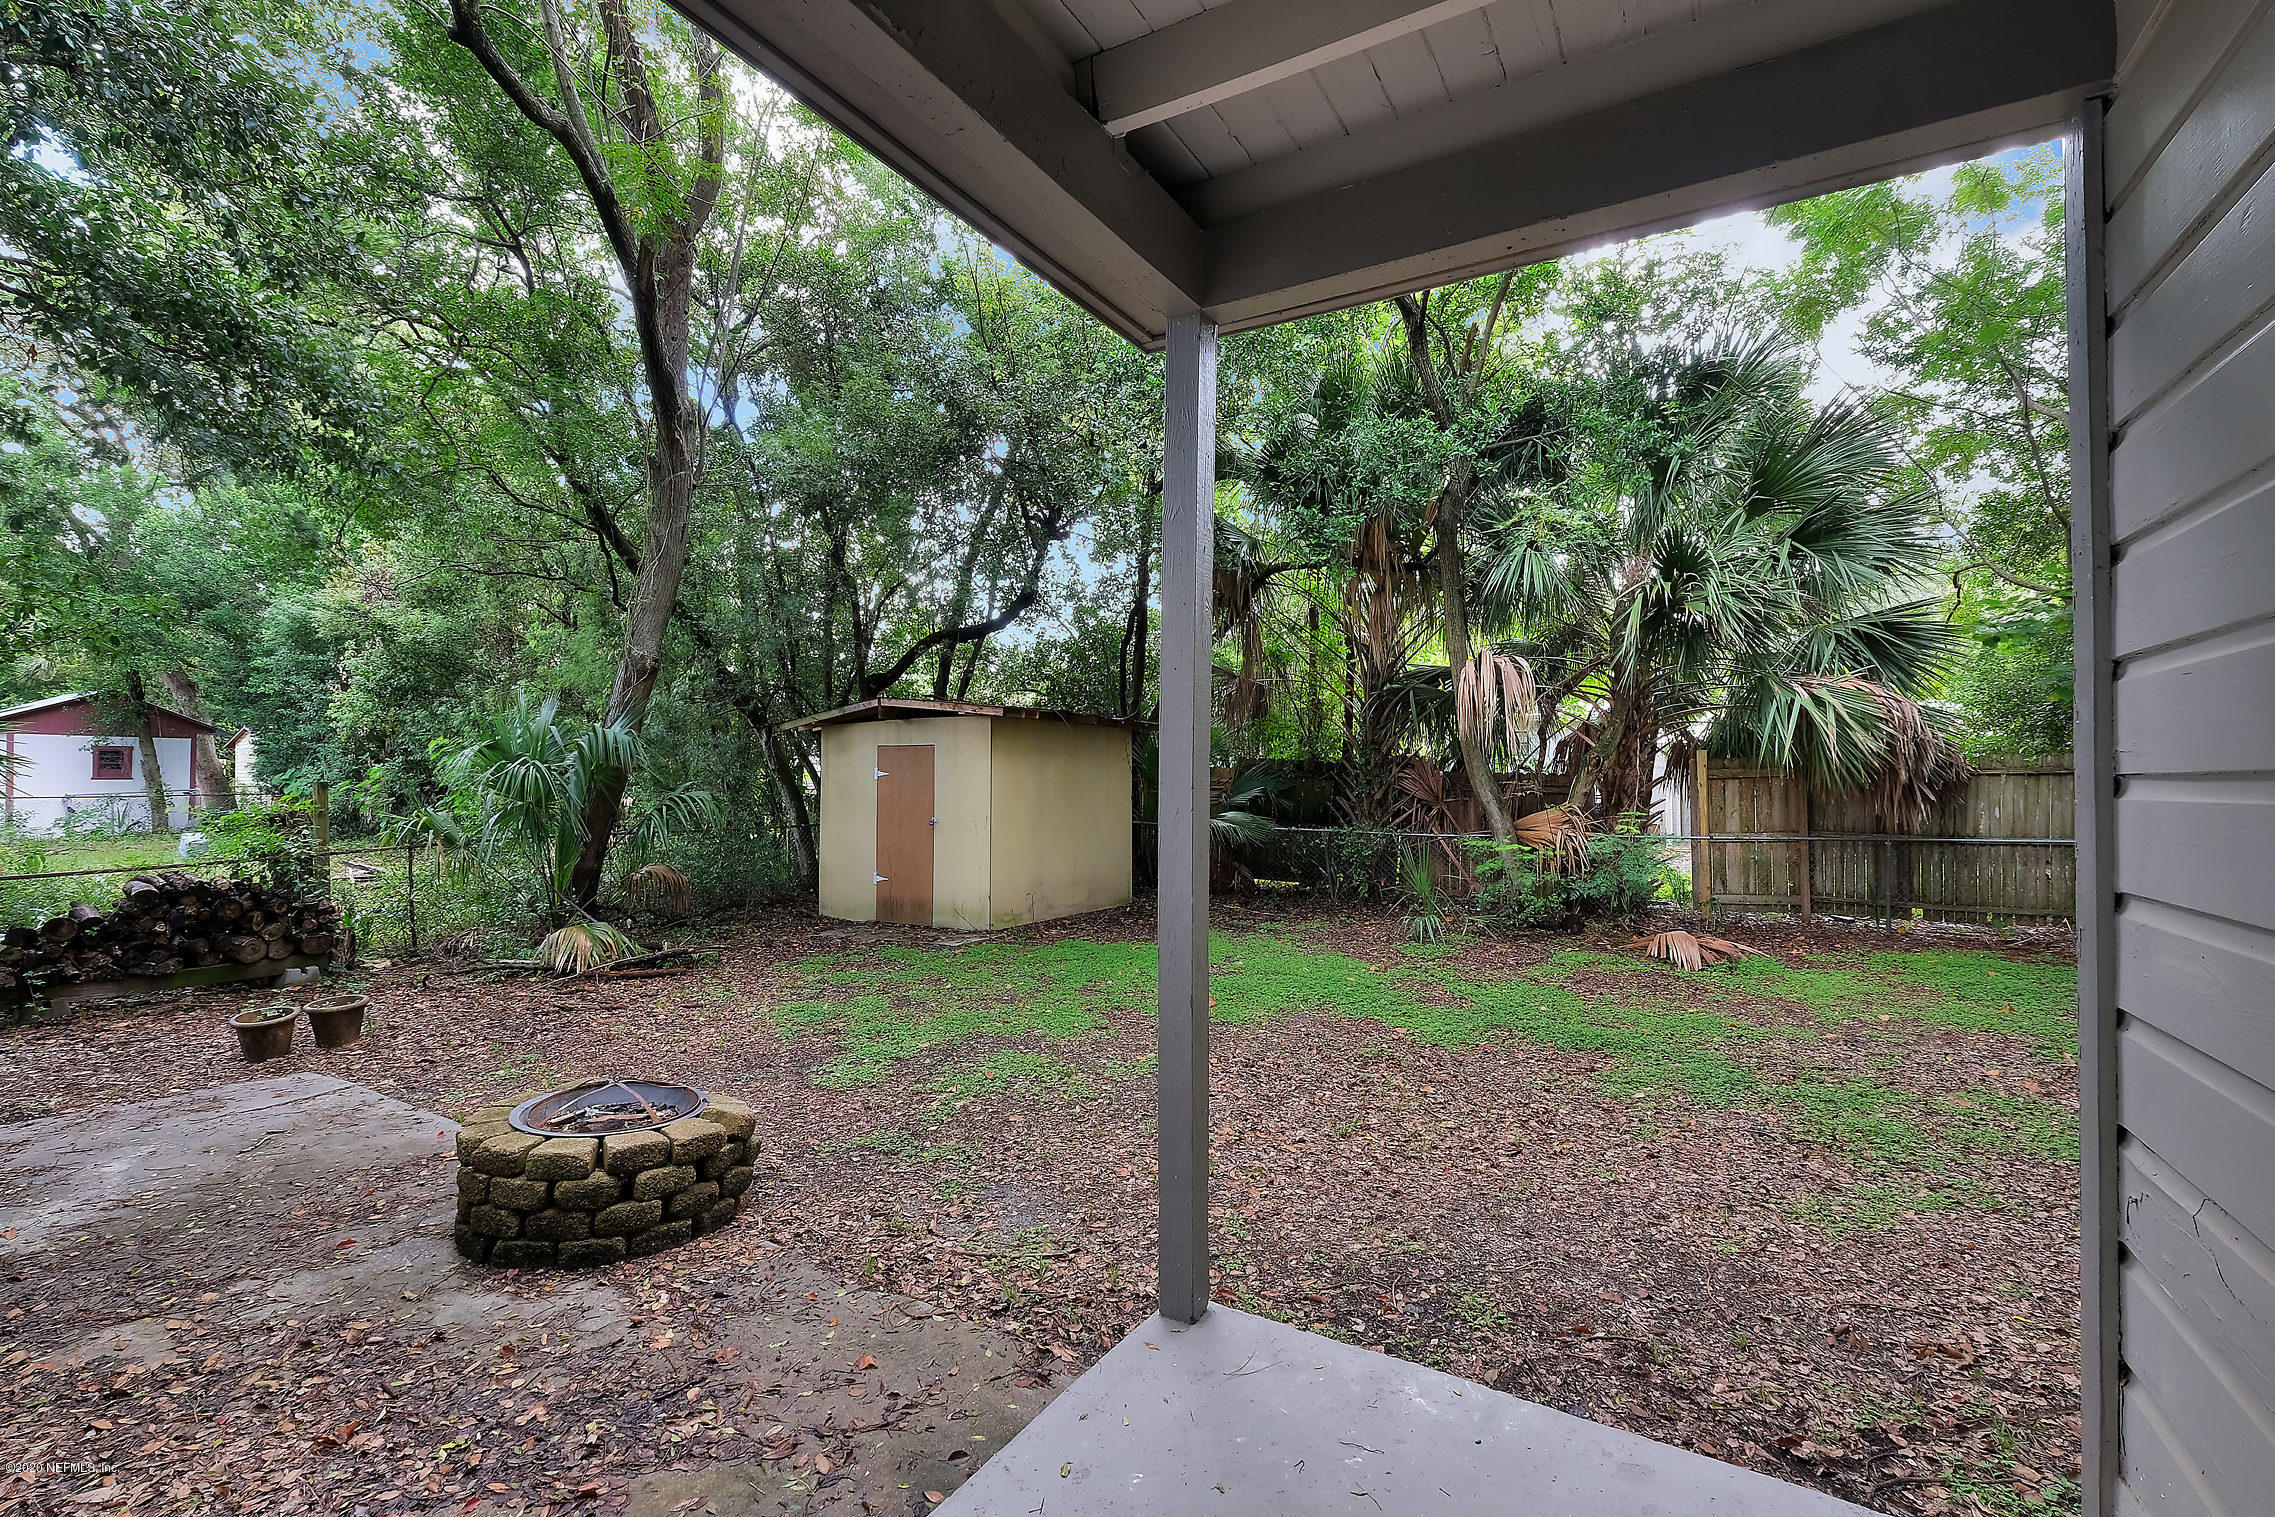 2653 TOWNSEND, JACKSONVILLE, FLORIDA 32211, 4 Bedrooms Bedrooms, ,2 BathroomsBathrooms,Residential,For sale,TOWNSEND,1072673